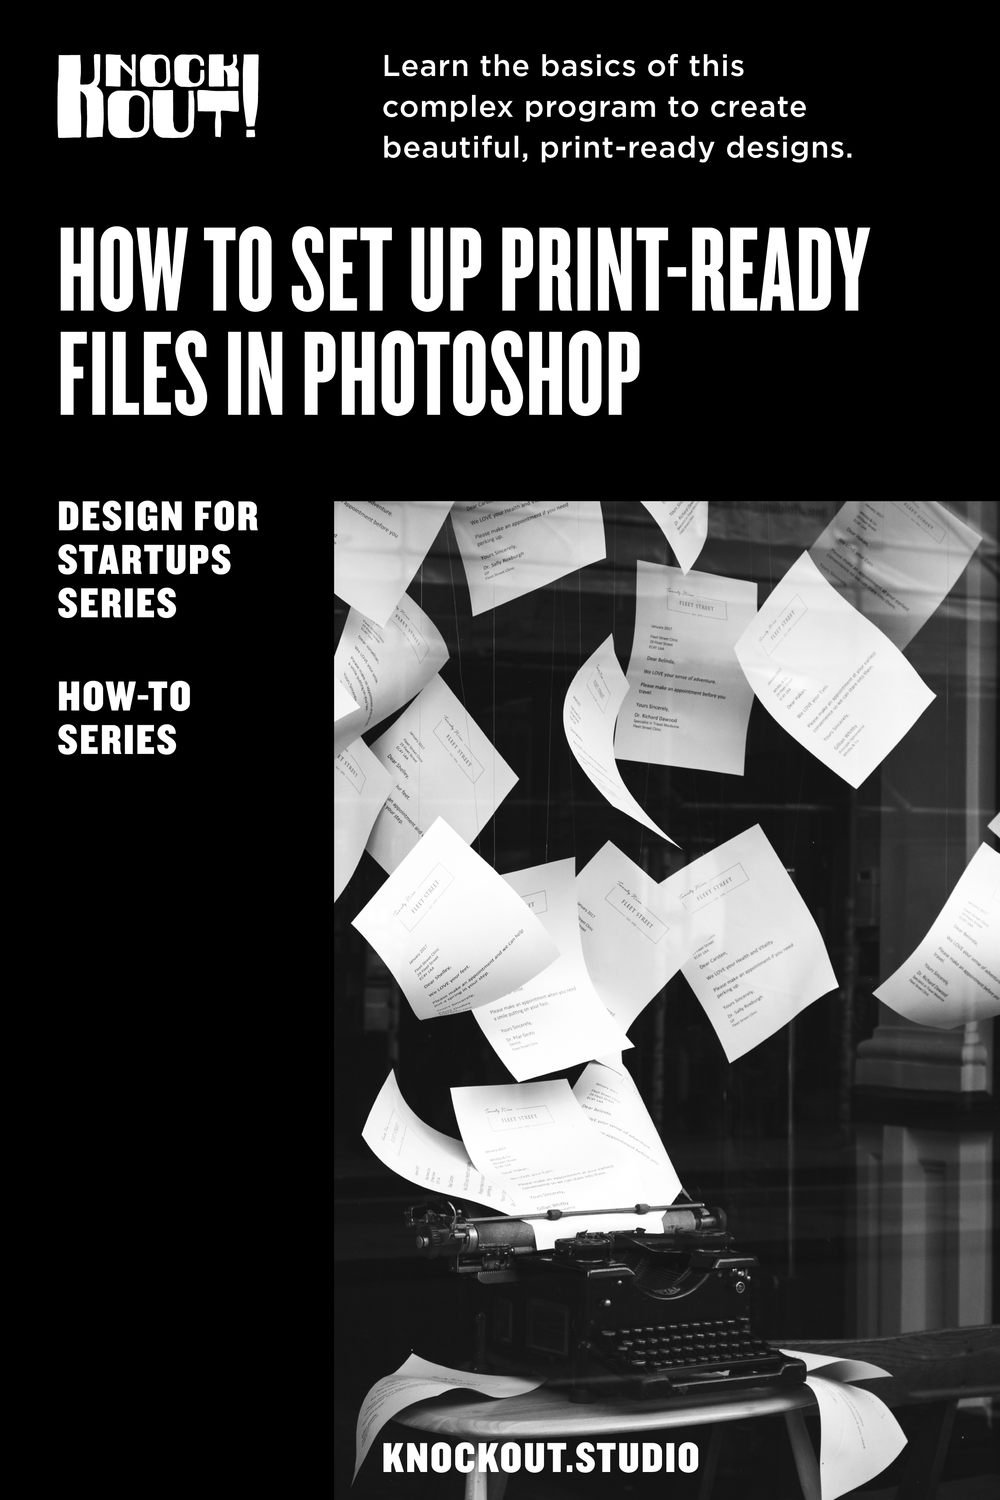 How To Set Up Print-Ready Files in Adobe Photoshop